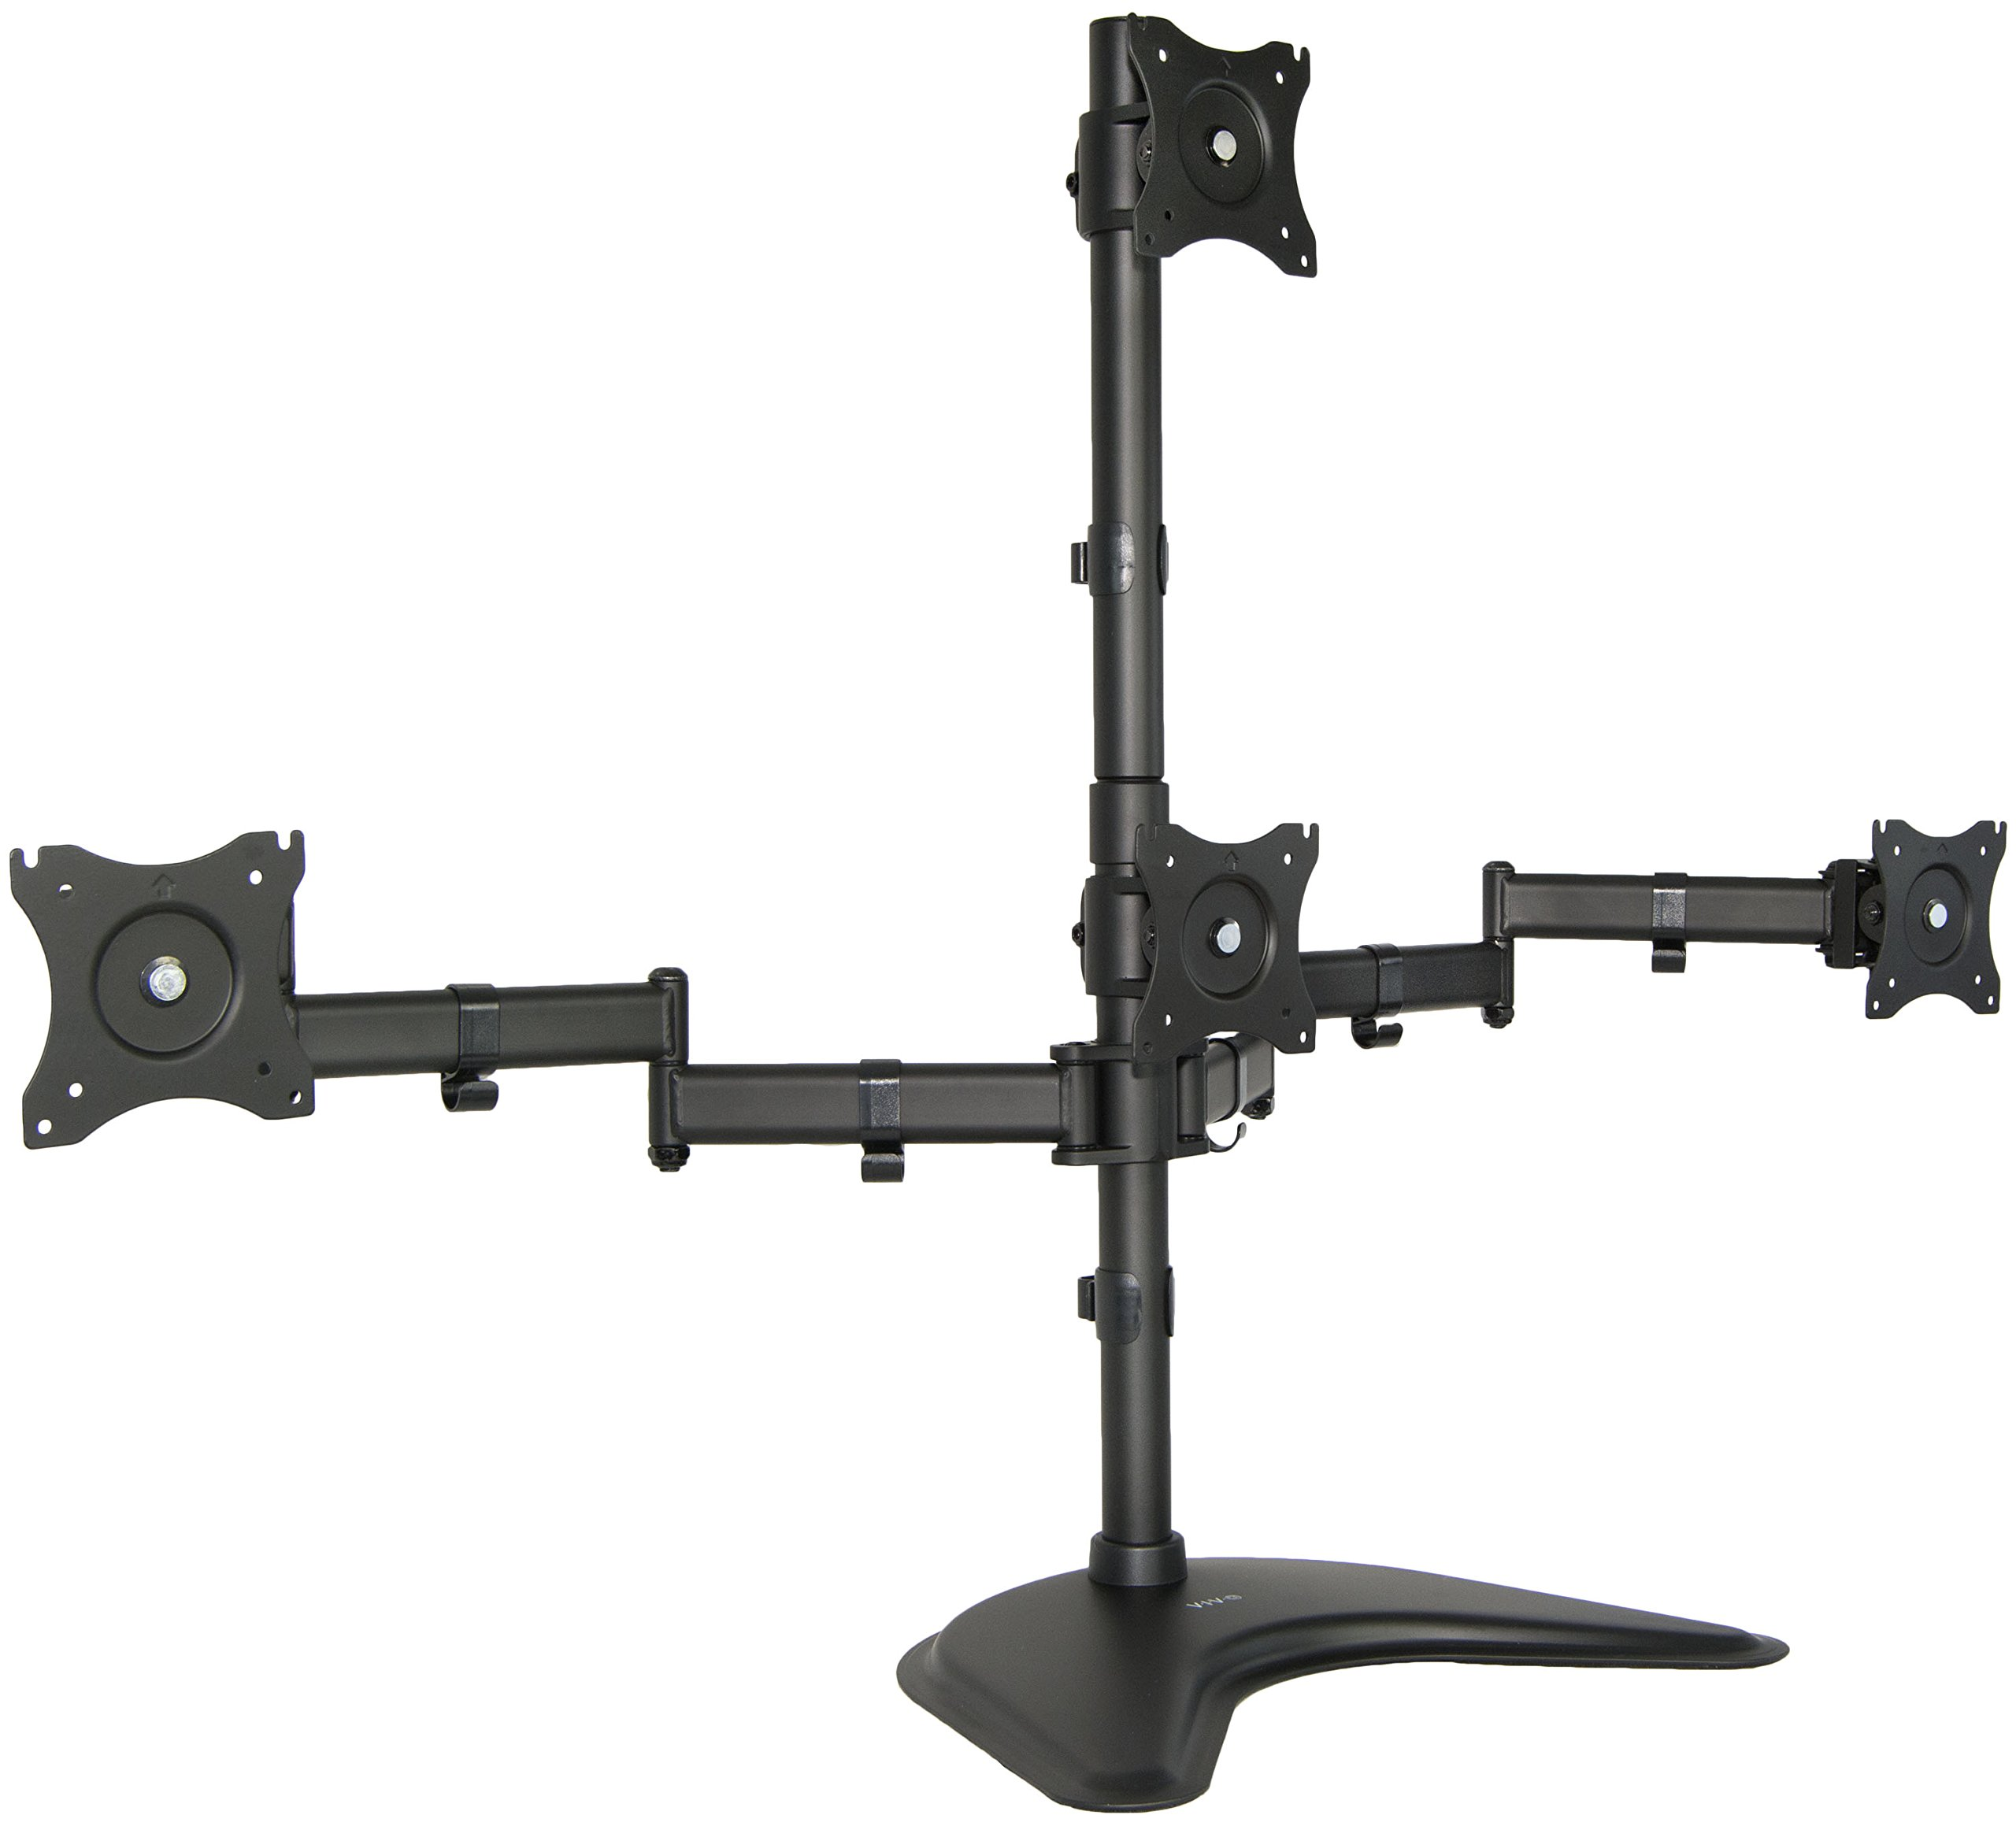 Quad LCD Monitor Desk Stand Mount Free-Standing 3 + 1 = 4 / Holds Four Screens up to 27'' (STAND-V004Z)